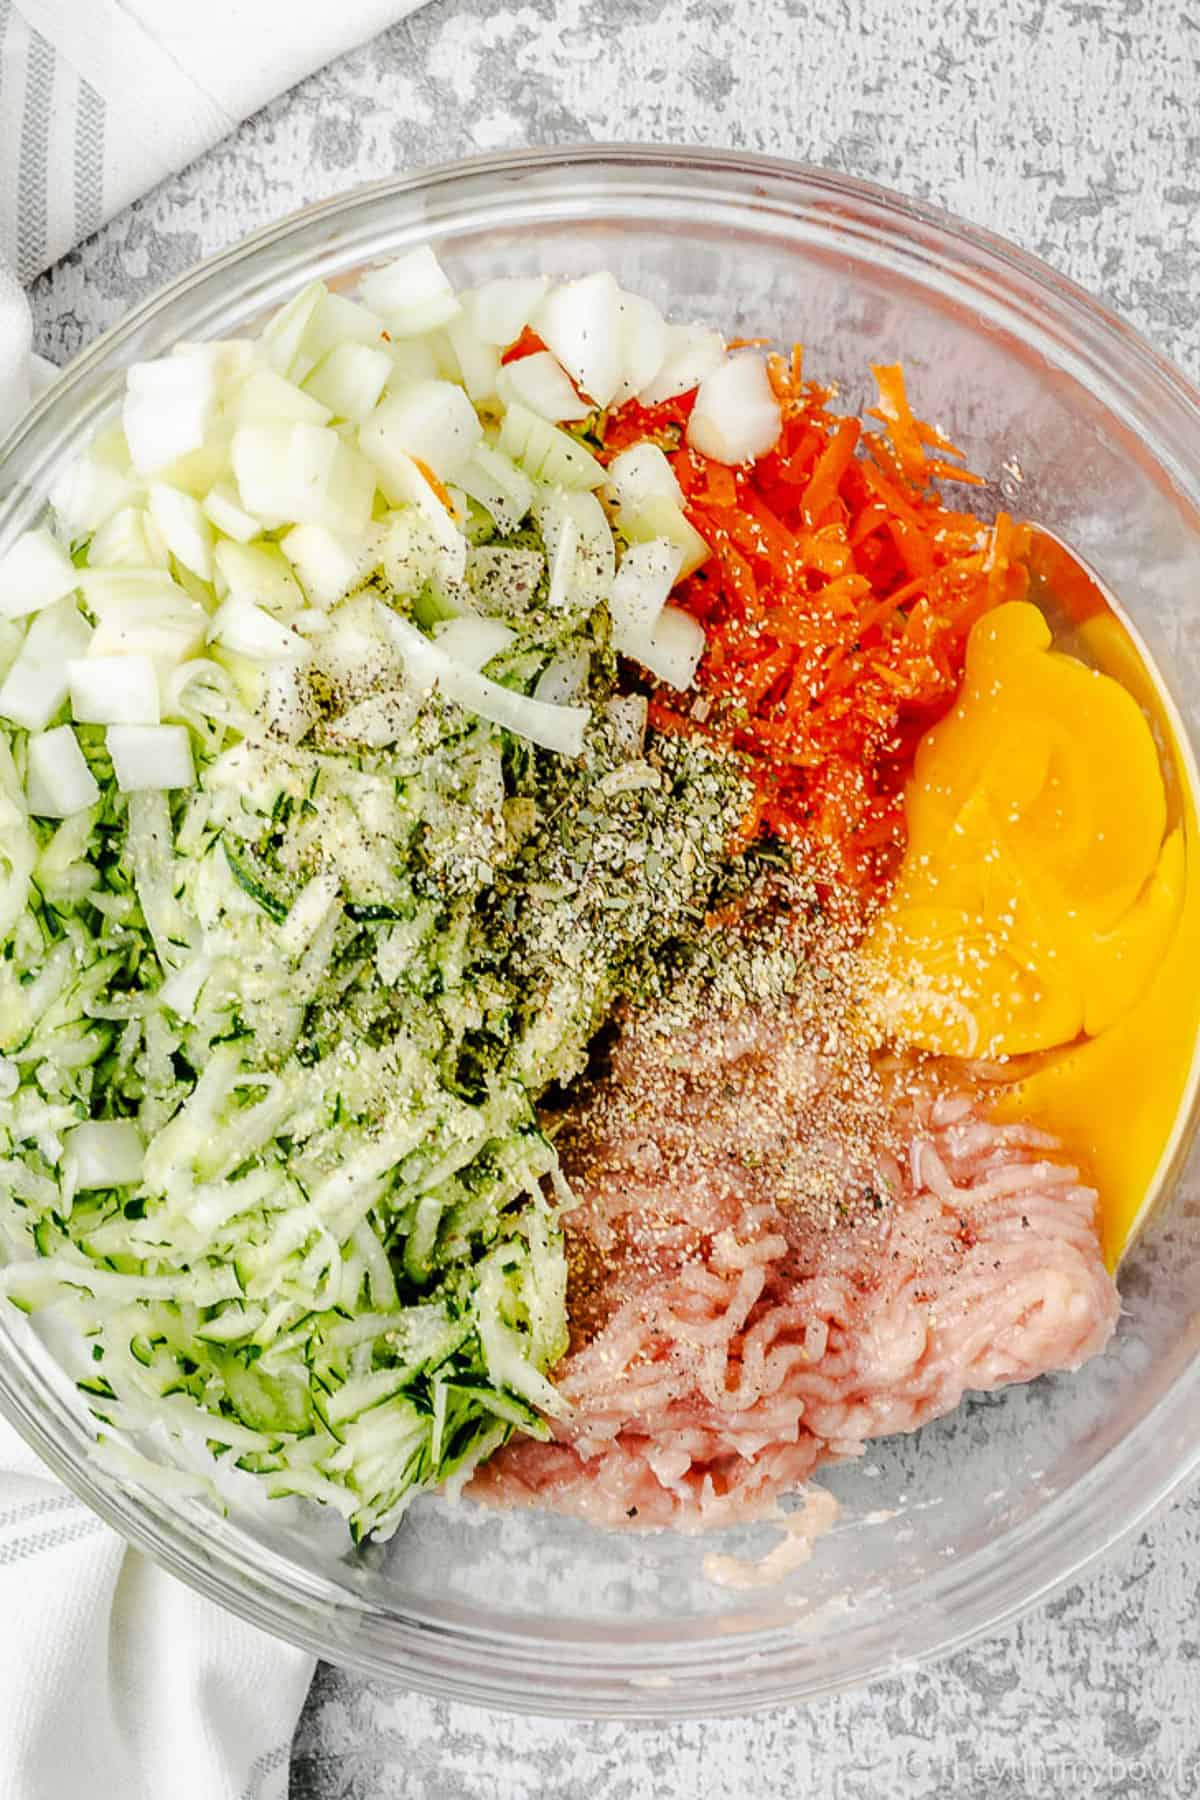 grated zucchini ground chicken carrots and egg in a glass bowl